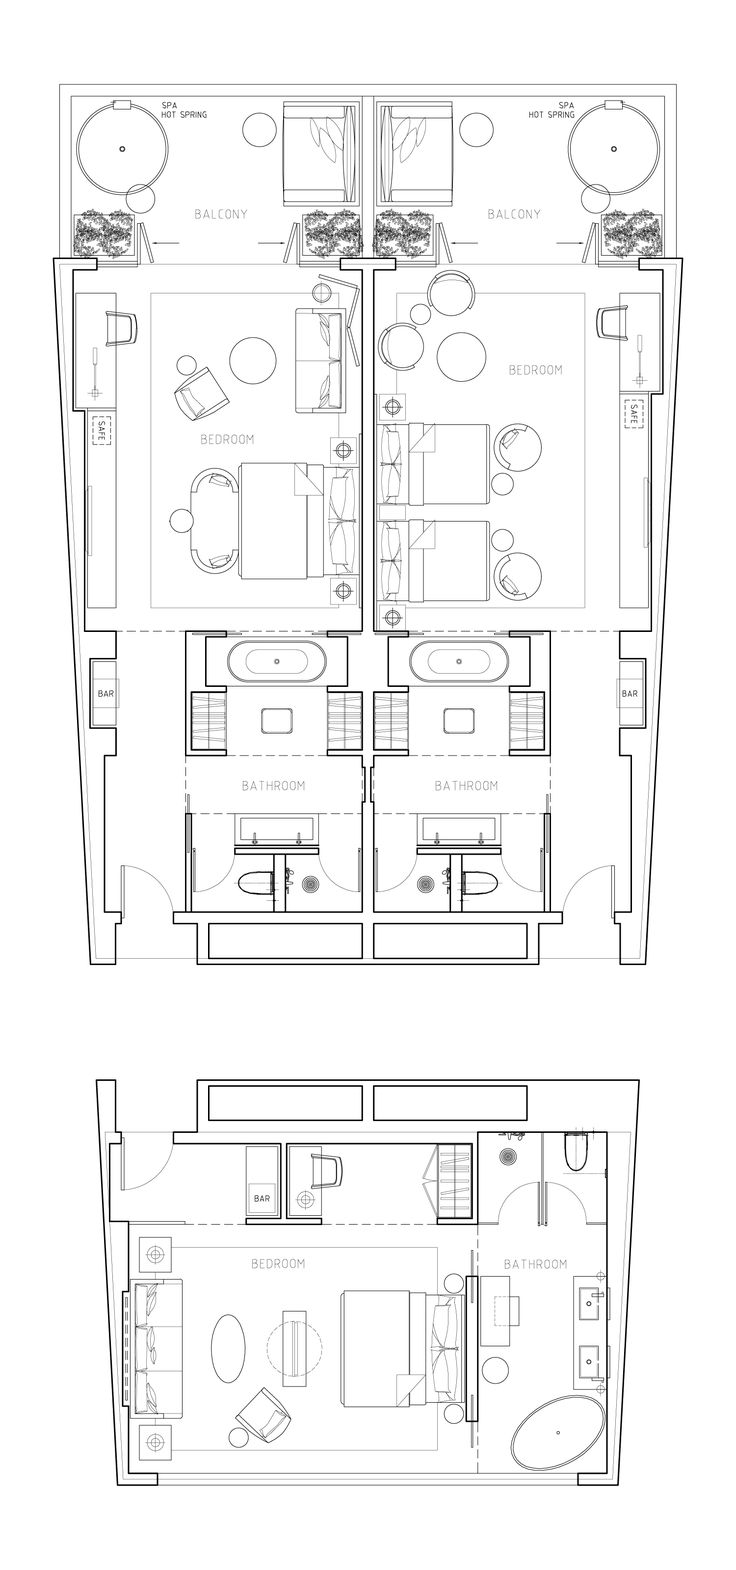 17 best images about hotel typical floor plan on pinterest for Hotel plan design